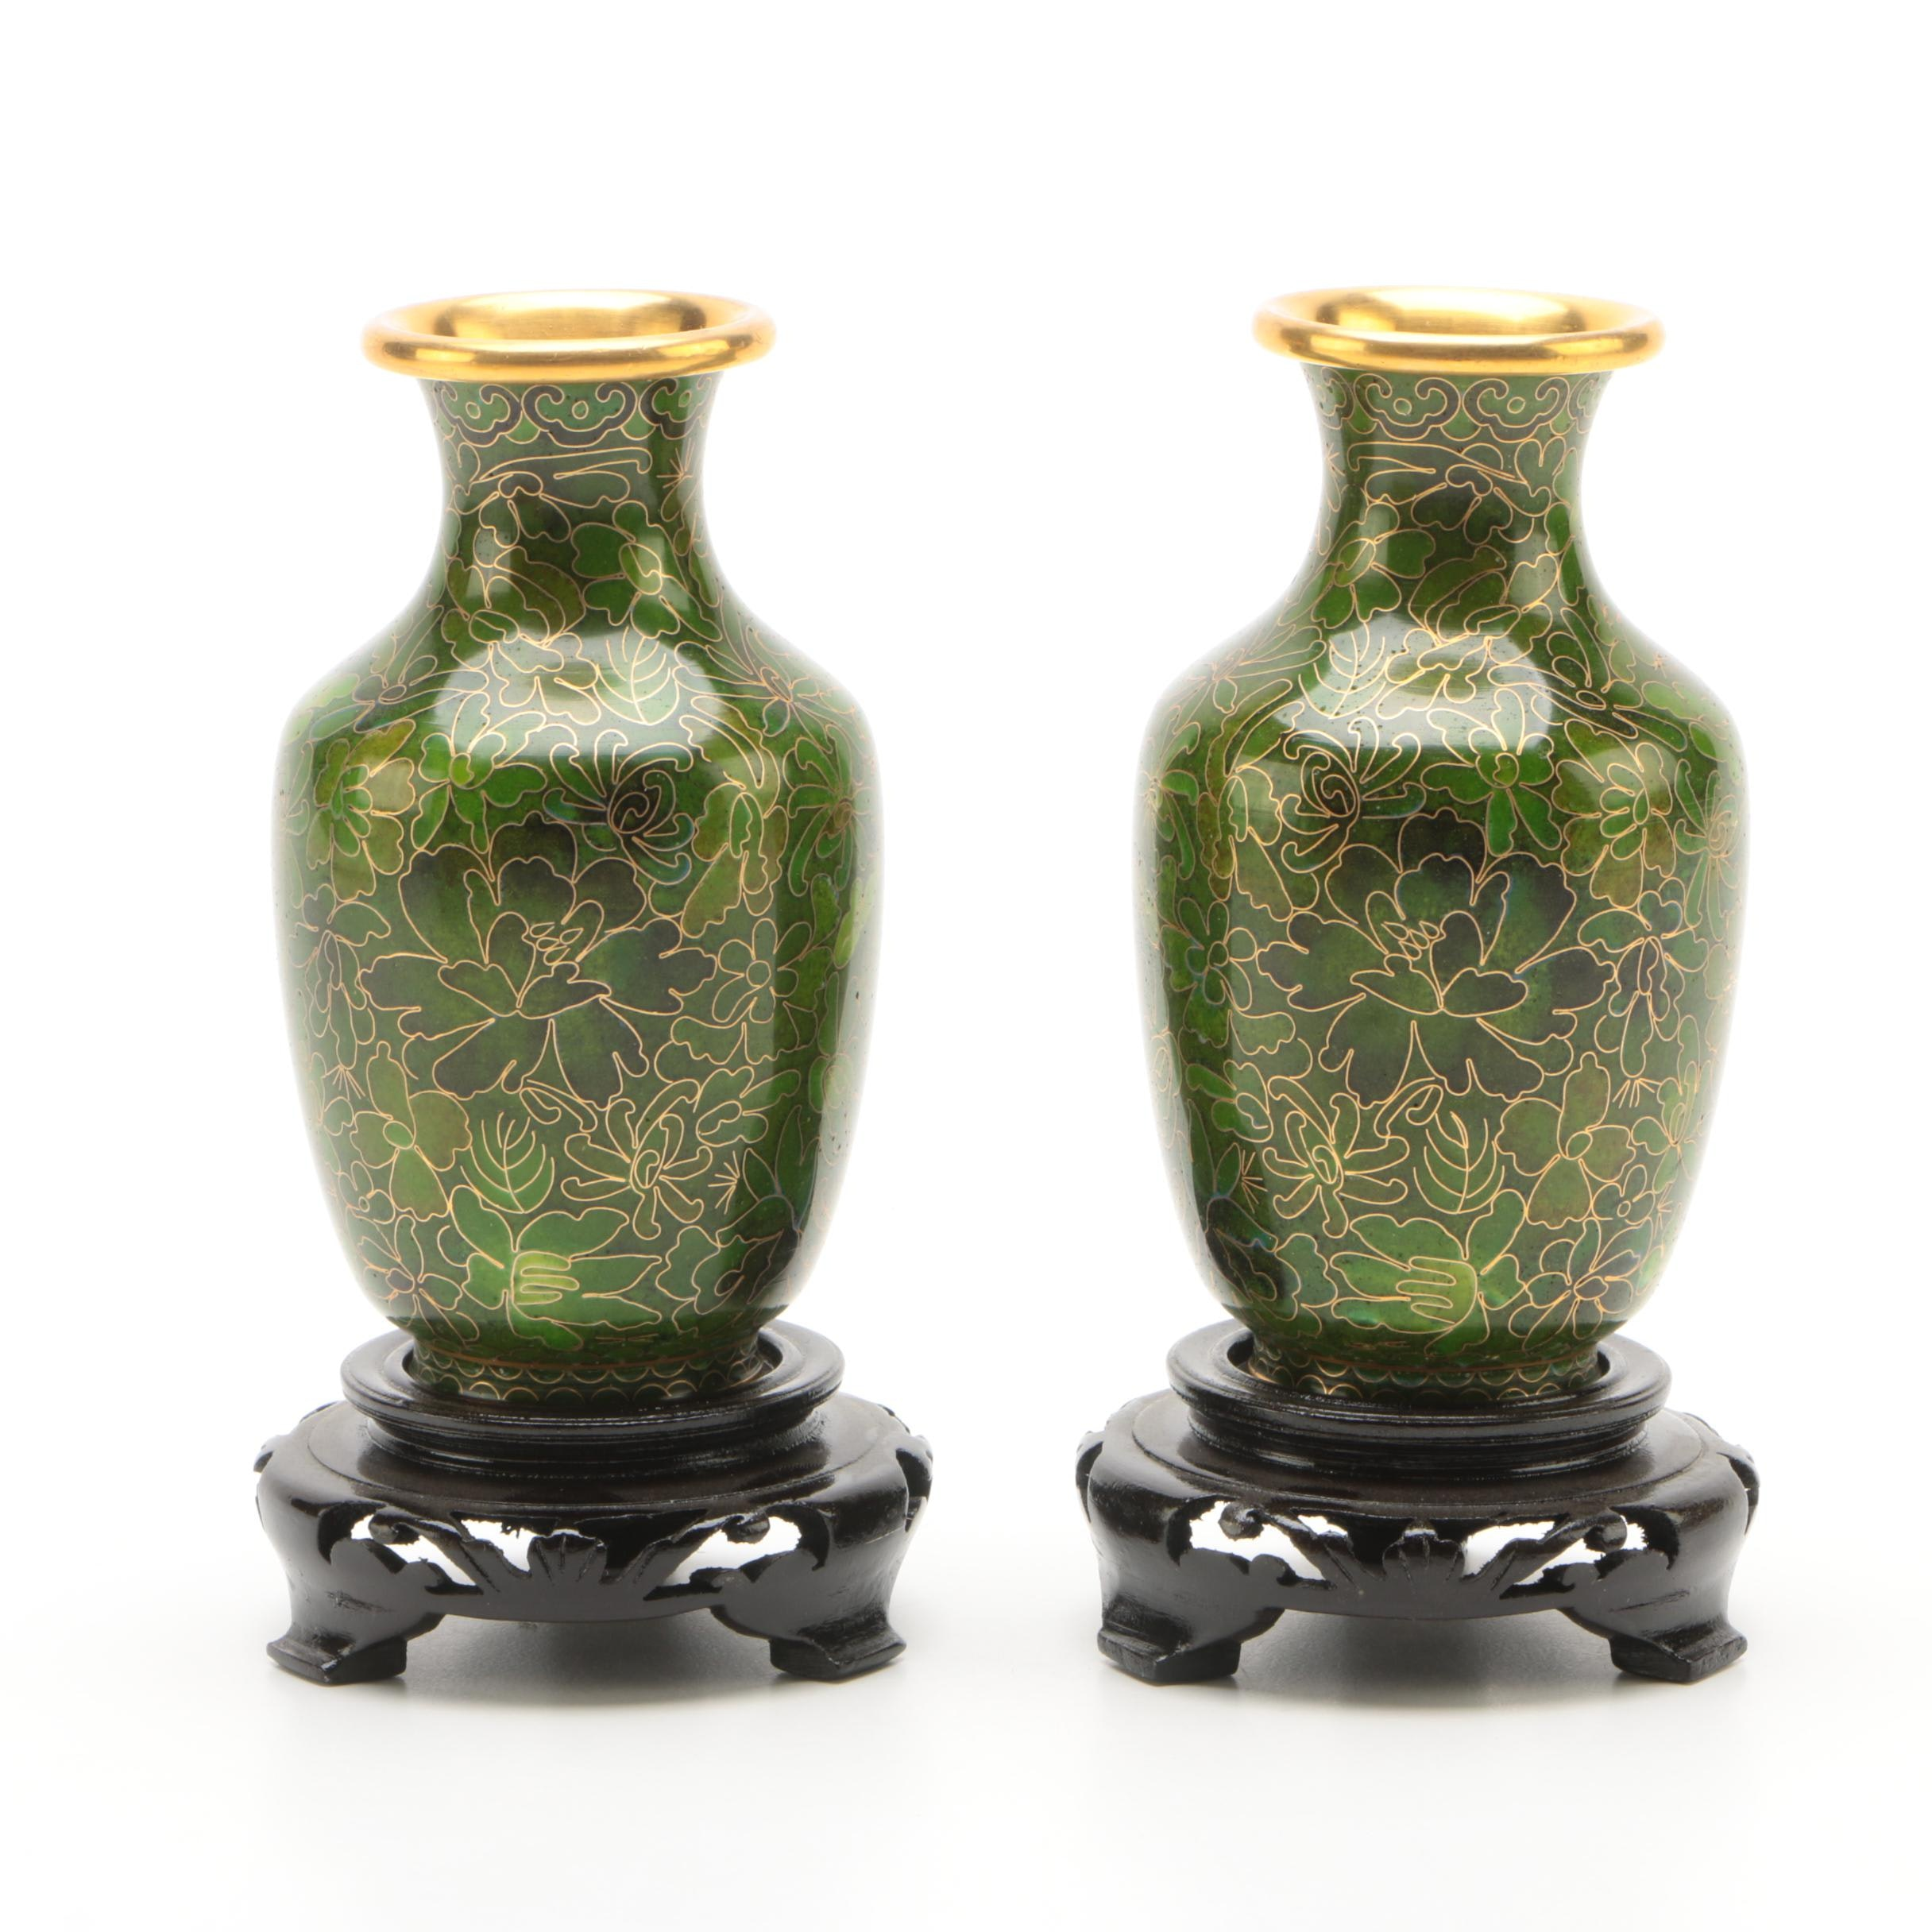 Chinese Cloisonne Vases and Carved Wood Stands